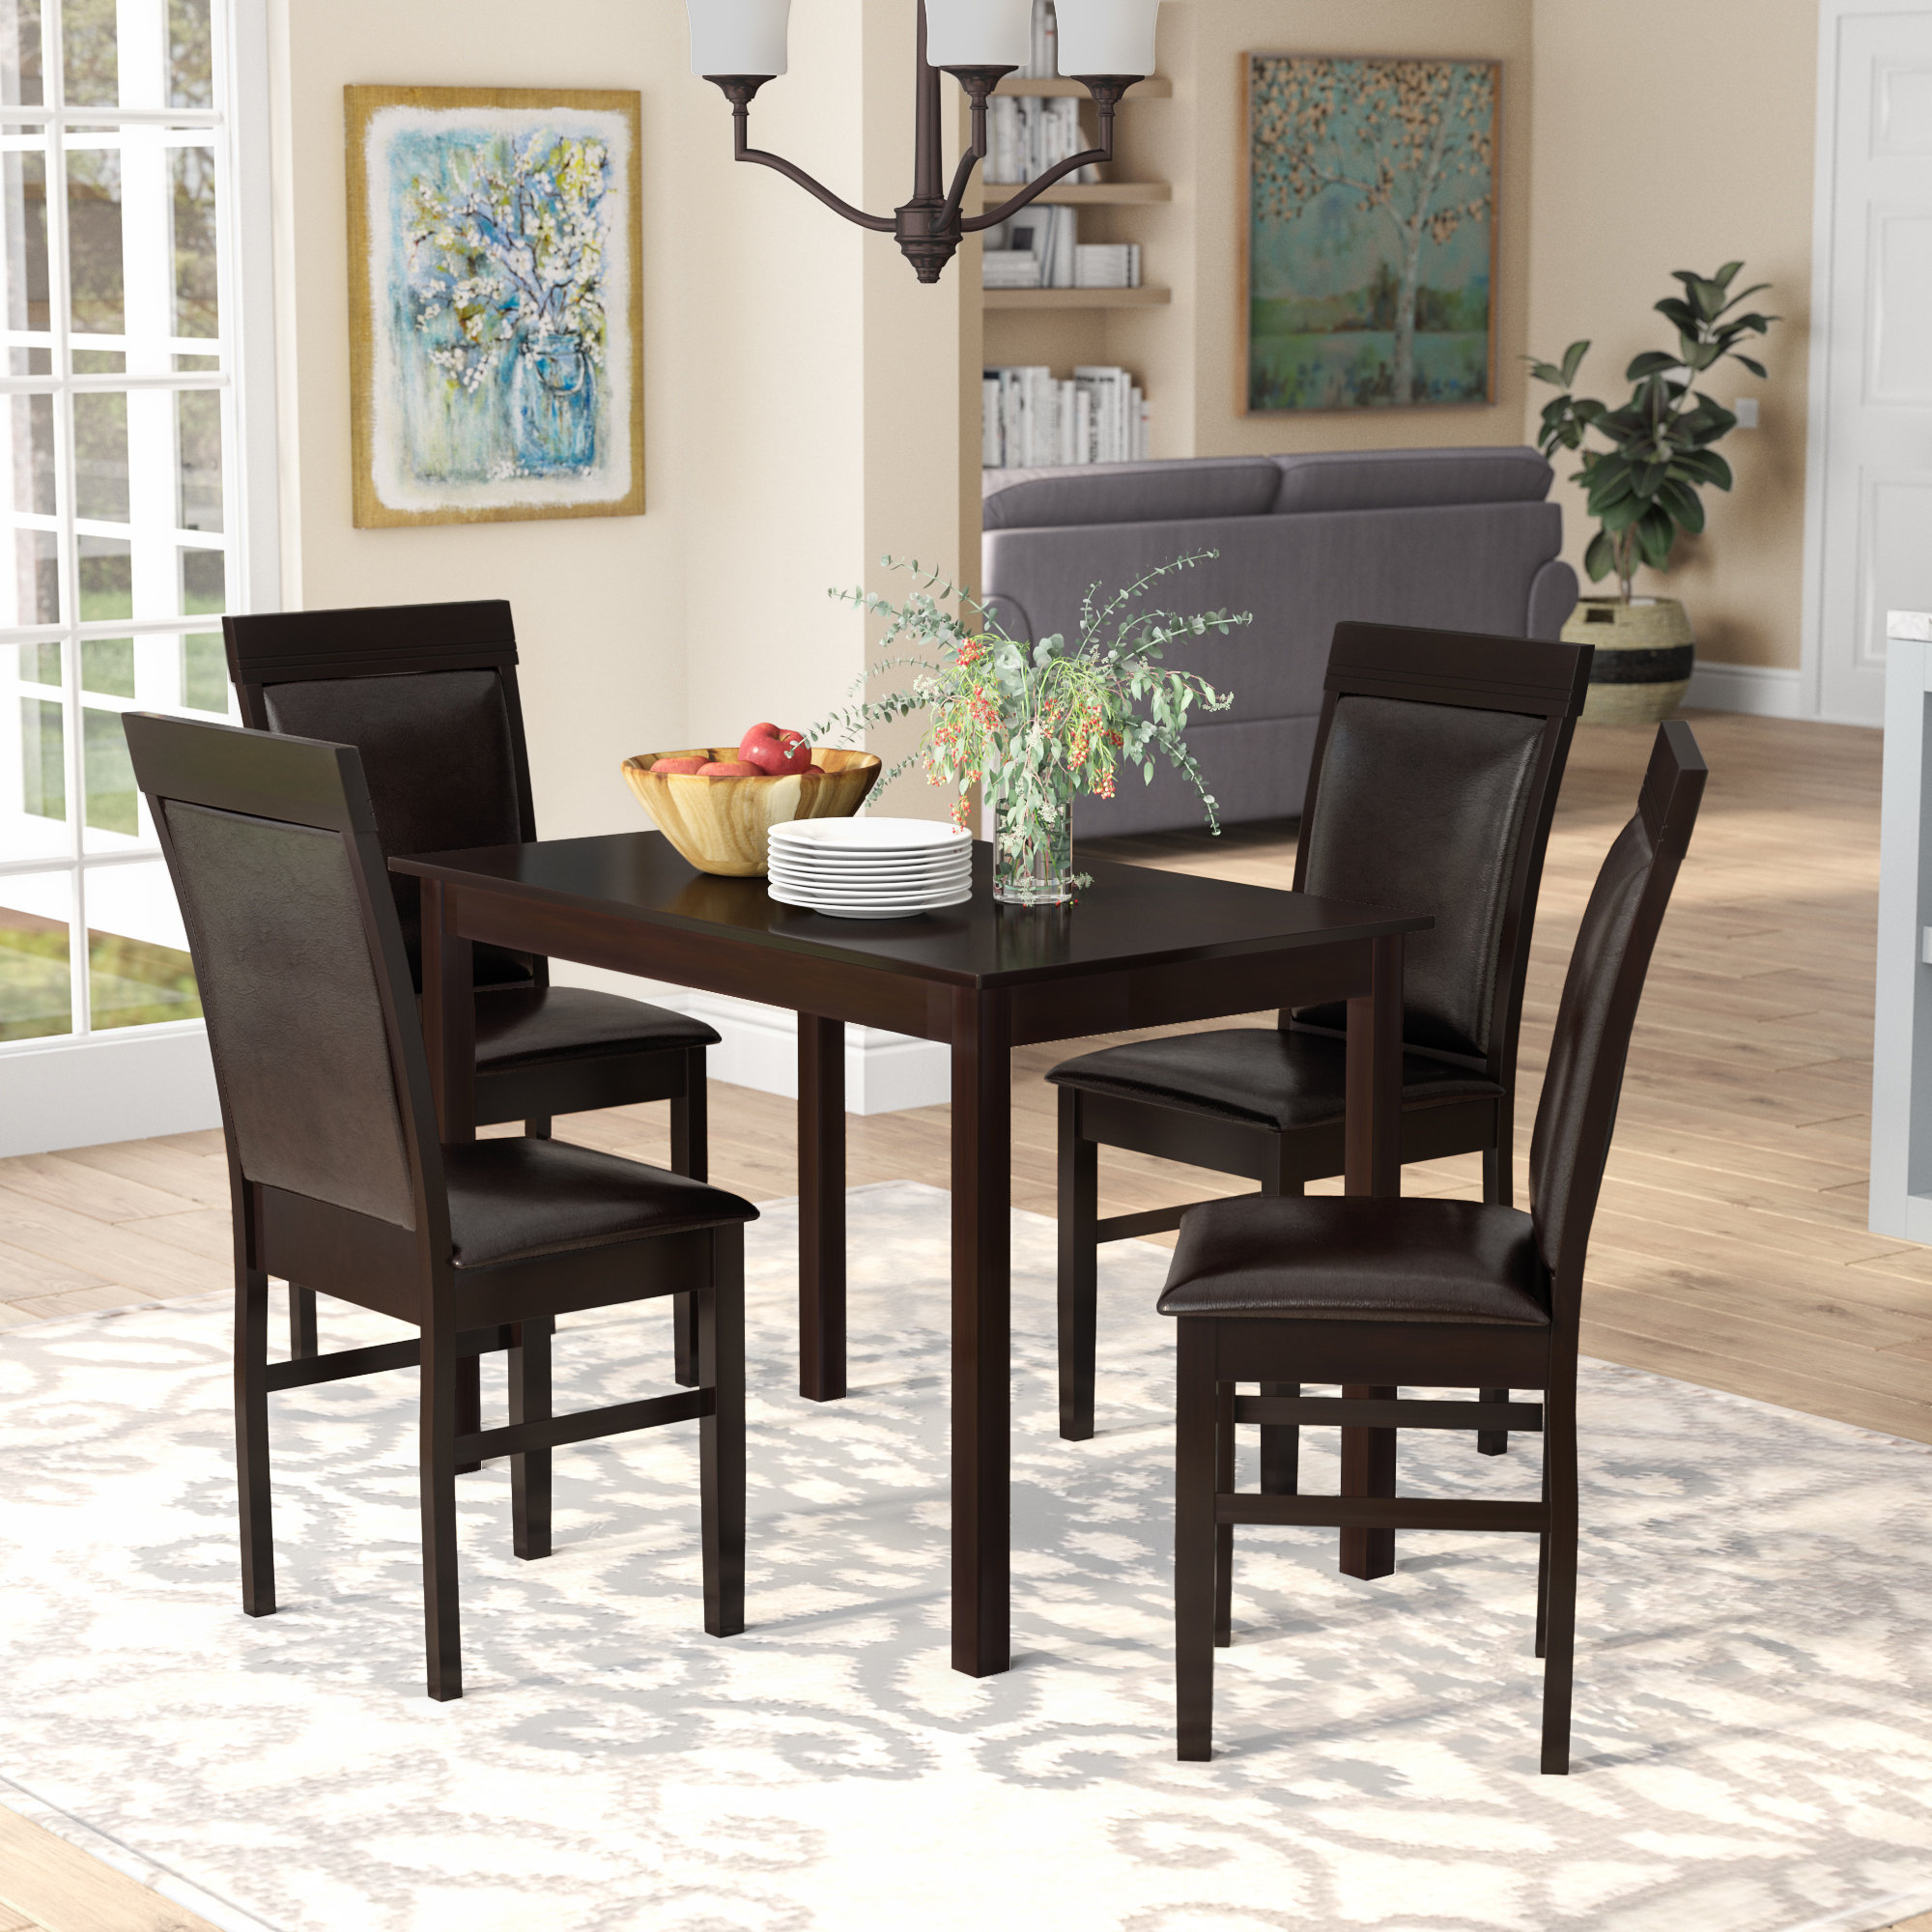 Kisor Modern And Contemporary 5 Piece Breakfast Nook Dining Set With Fashionable 5 Piece Breakfast Nook Dining Sets (View 9 of 20)